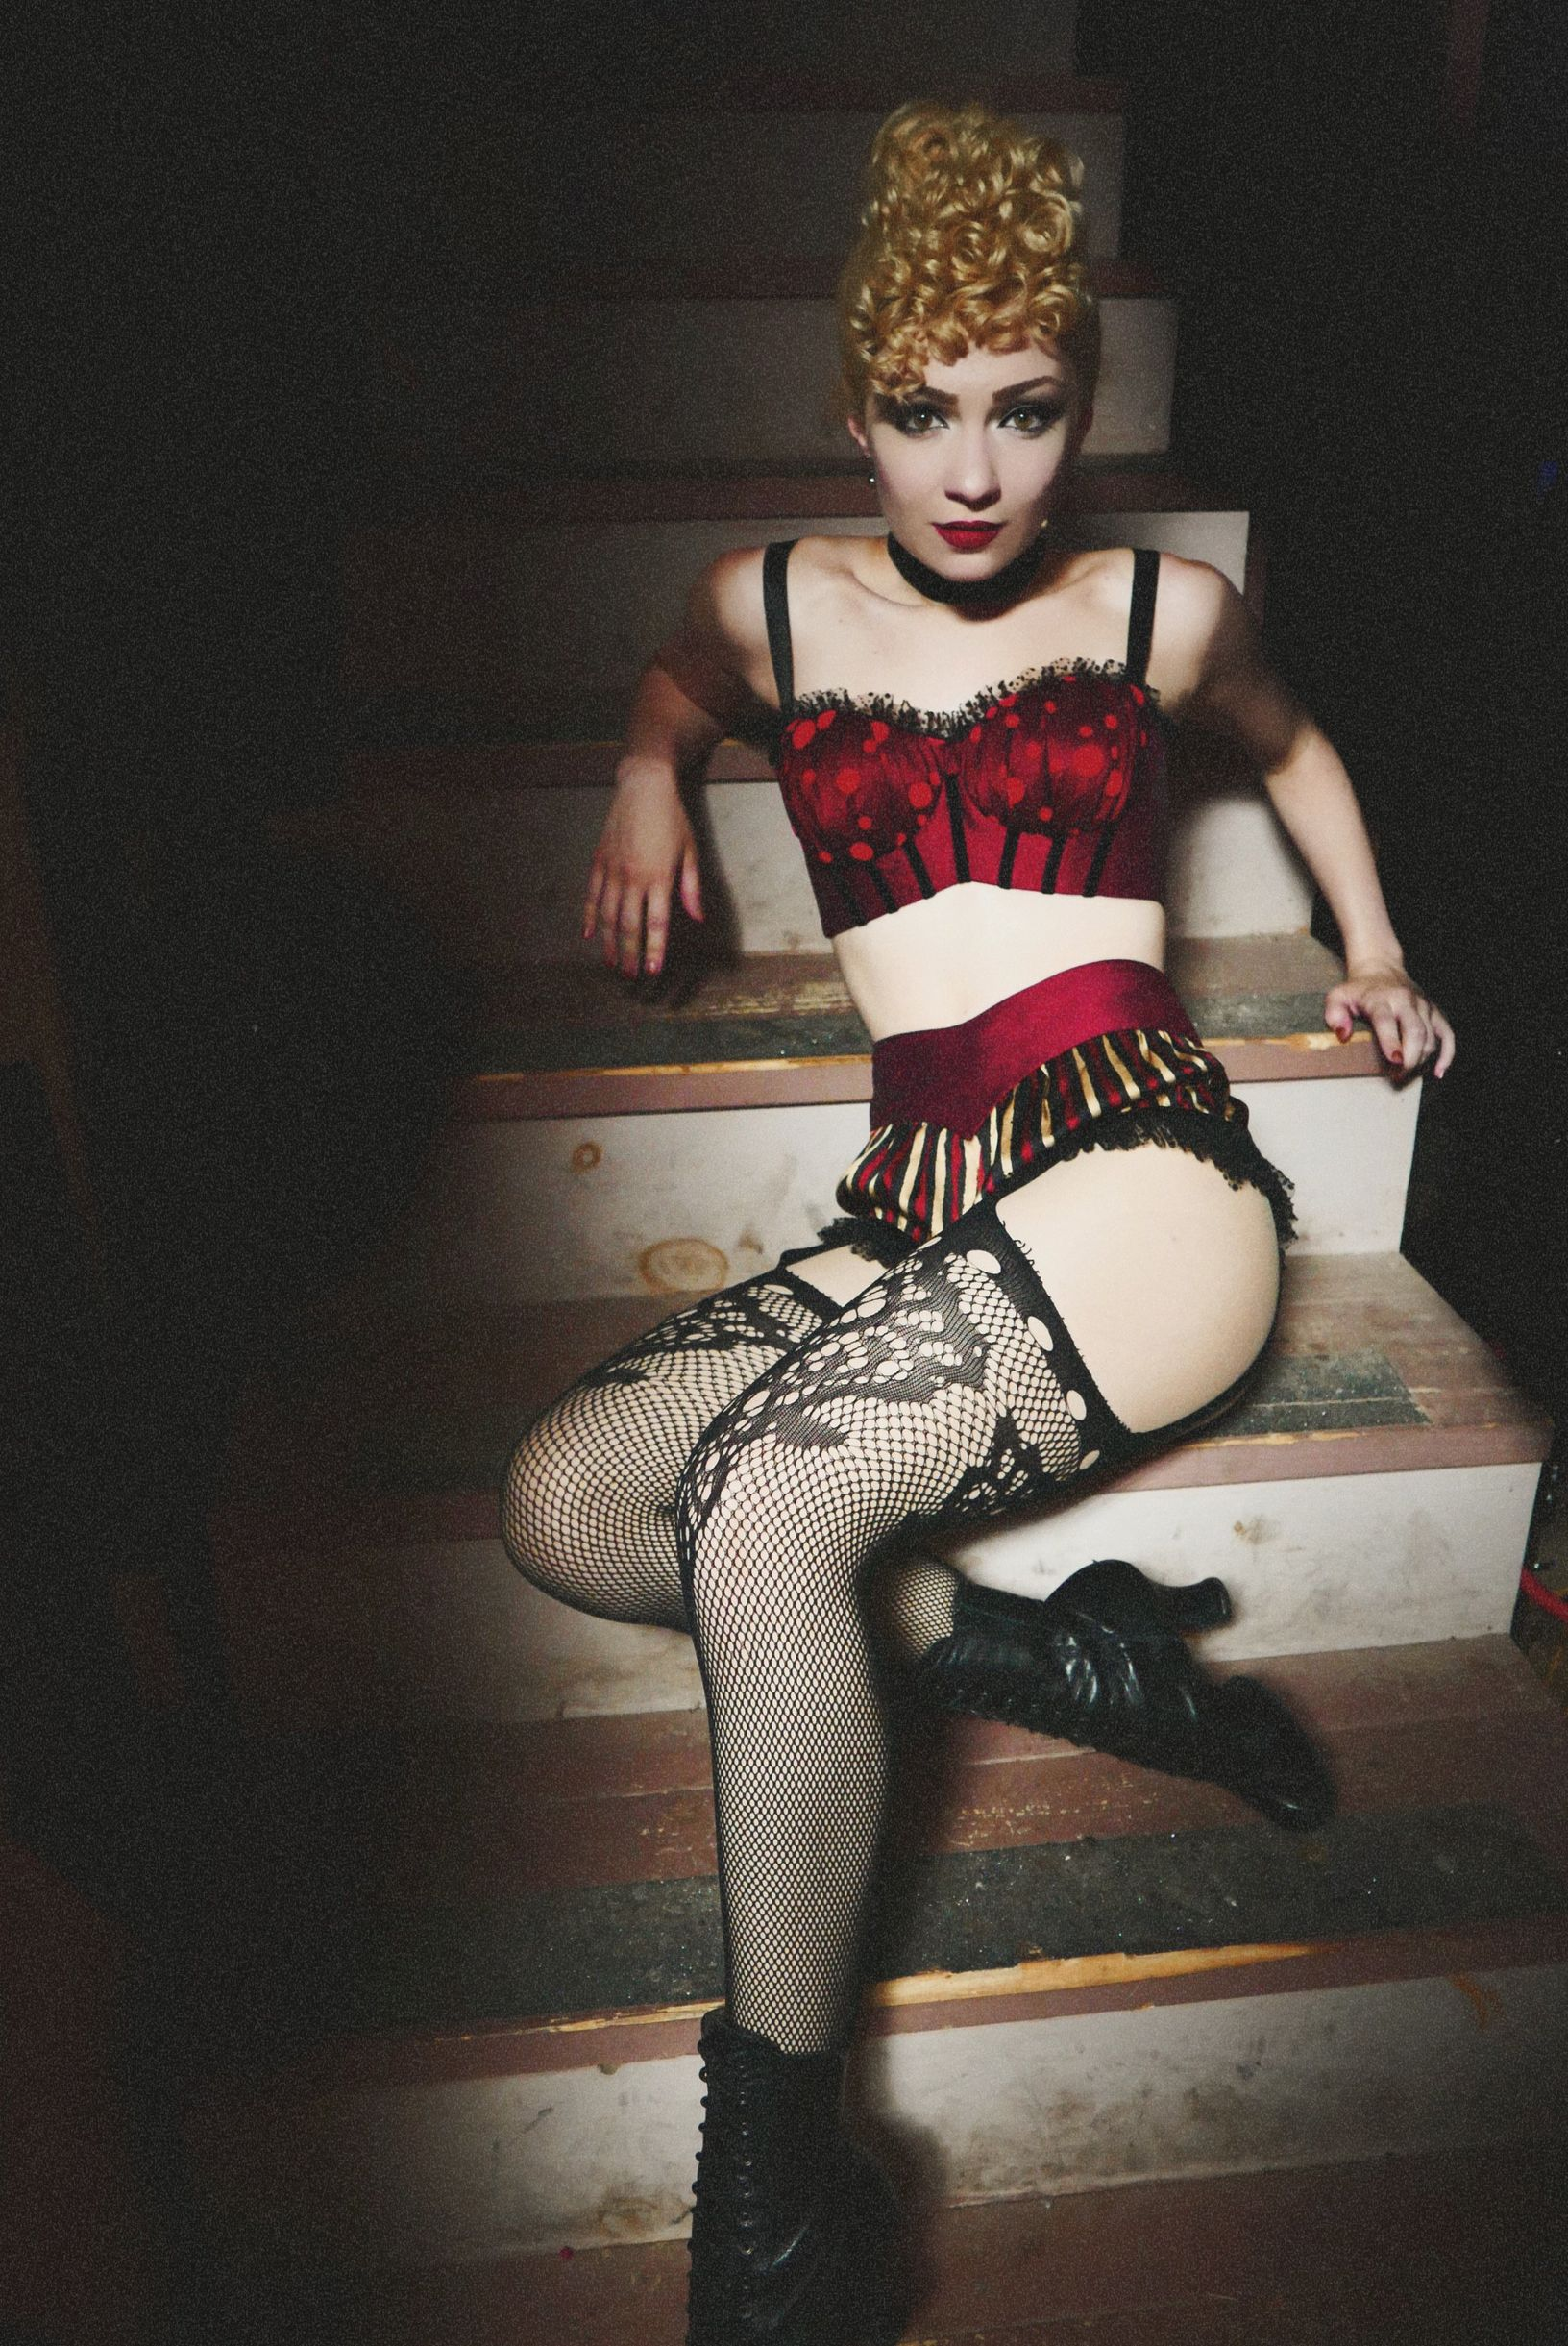 Paloma Garcia-Lee is seated on a staircase. She is wearing a red bra and shorts, black fishnet stockings and black boots.